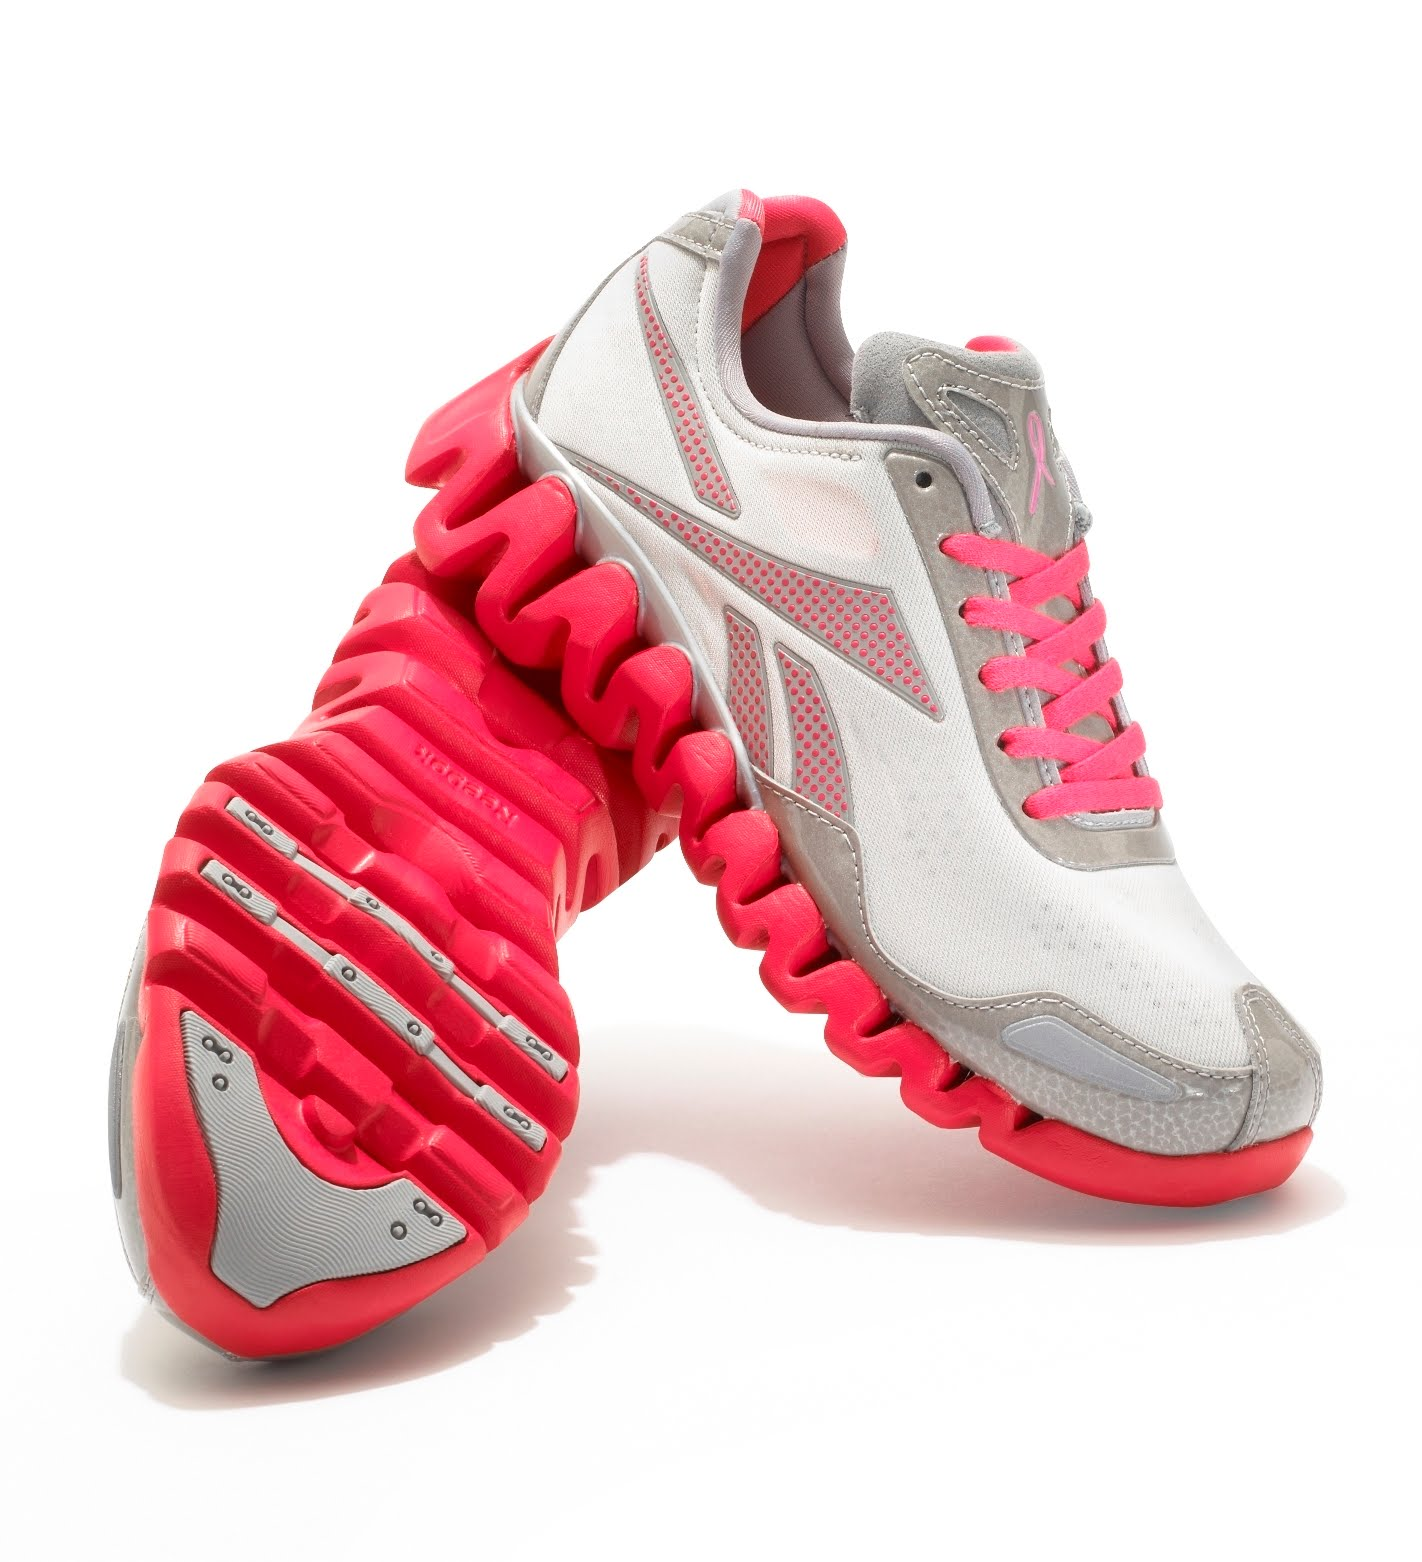 best reebok shoes for zumba